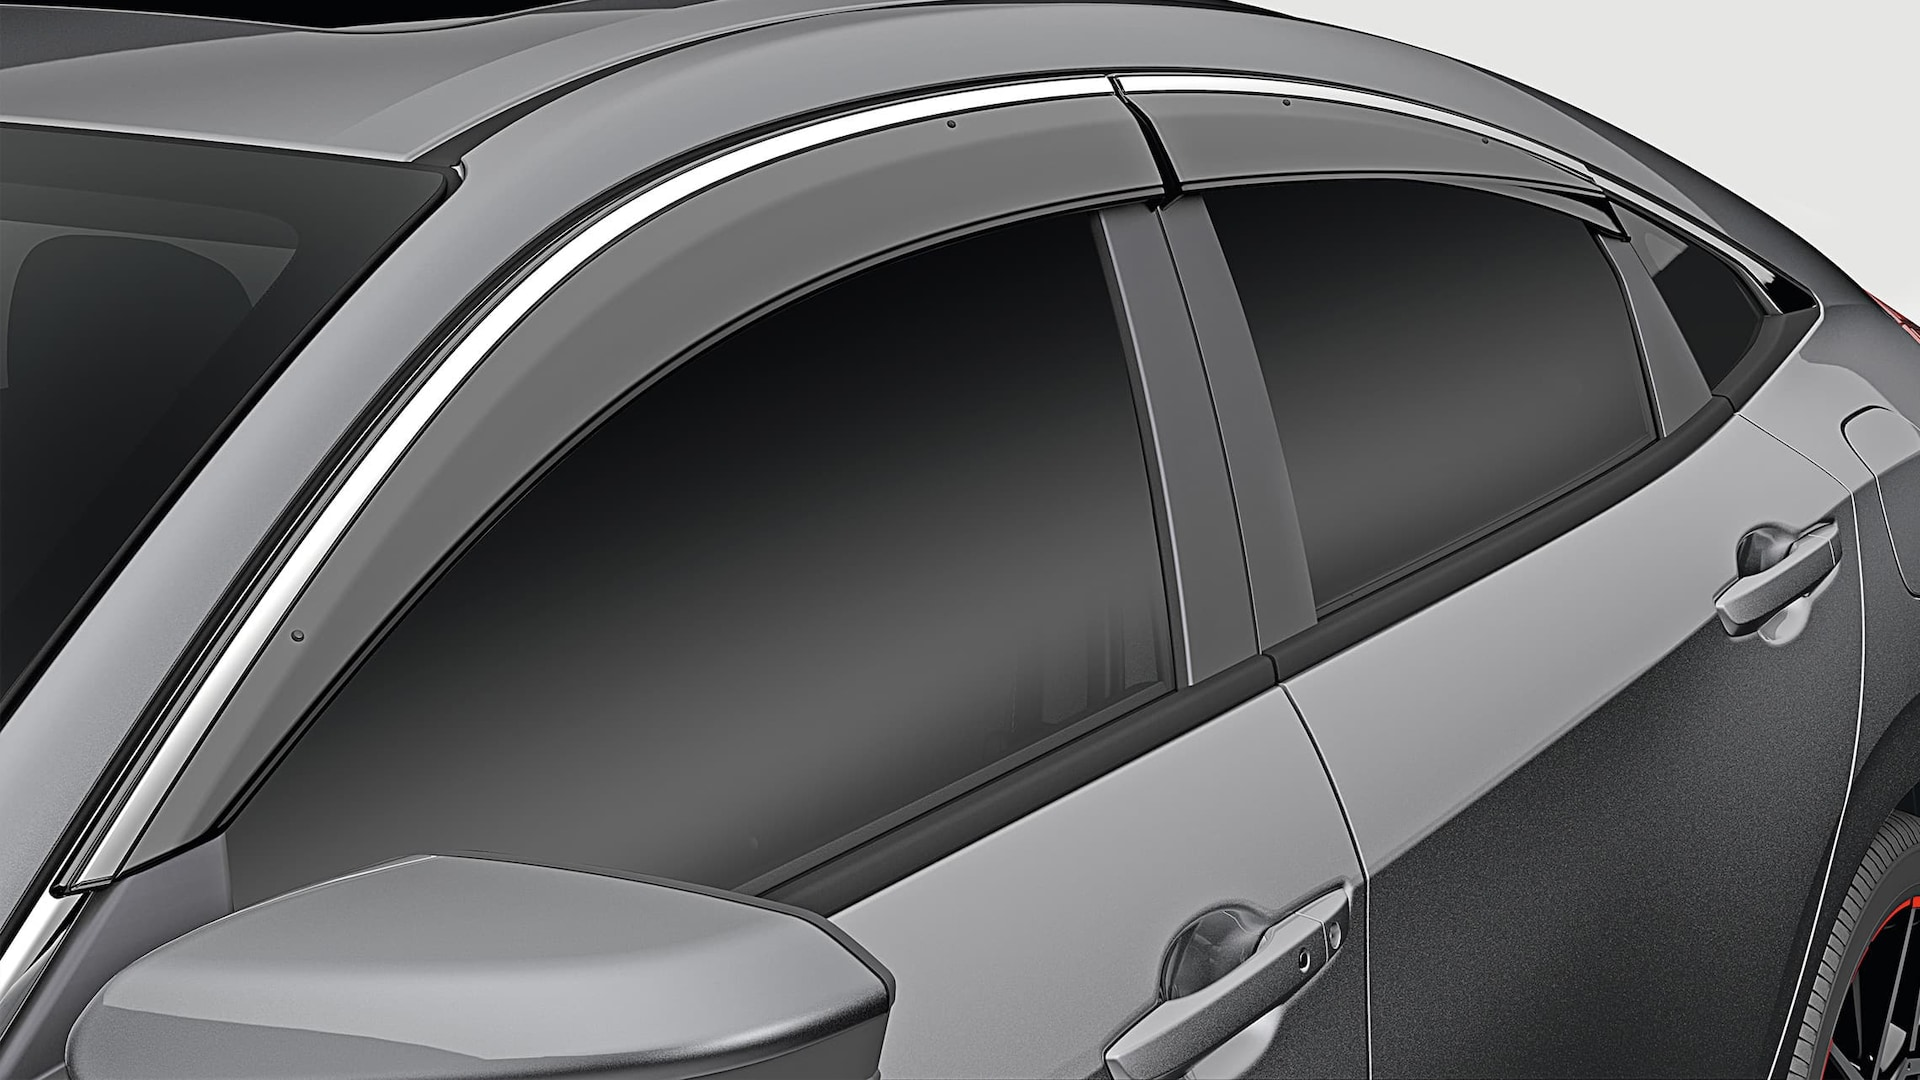 Door visor detail on the 2020 Honda Civic Sedan in Modern Steel Metallic.